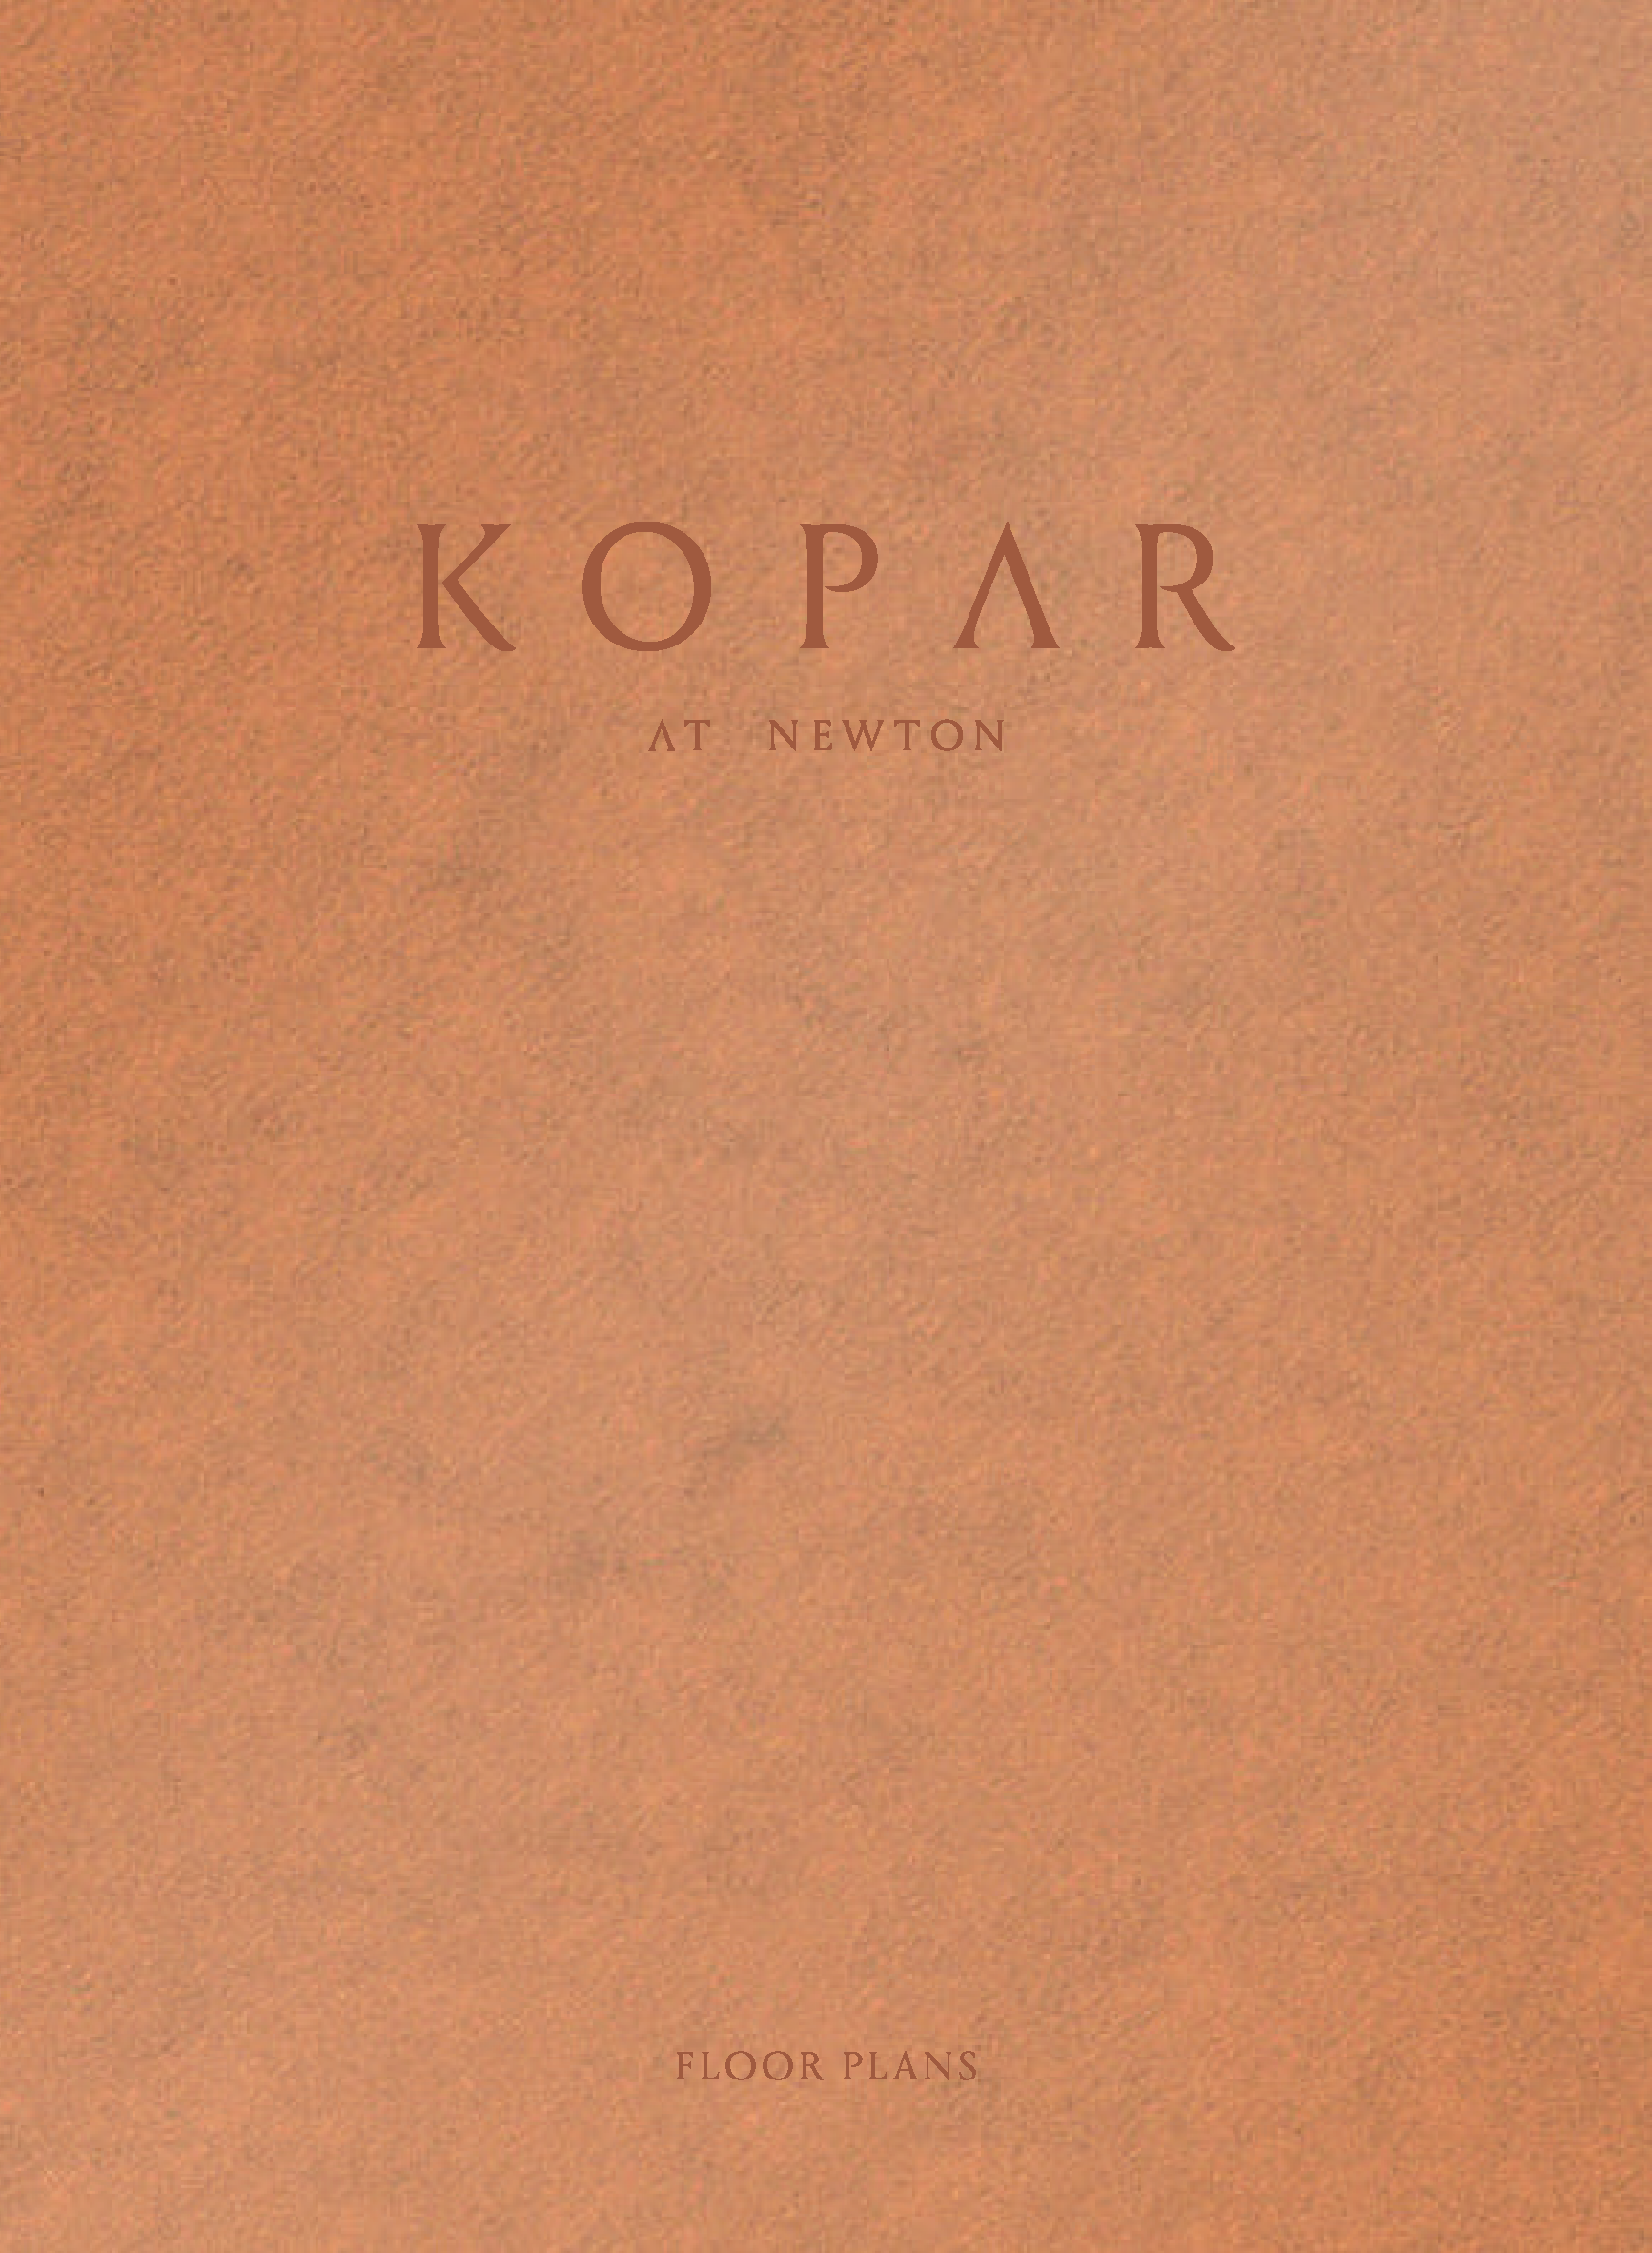 Kopar at Newton Brochure cover page